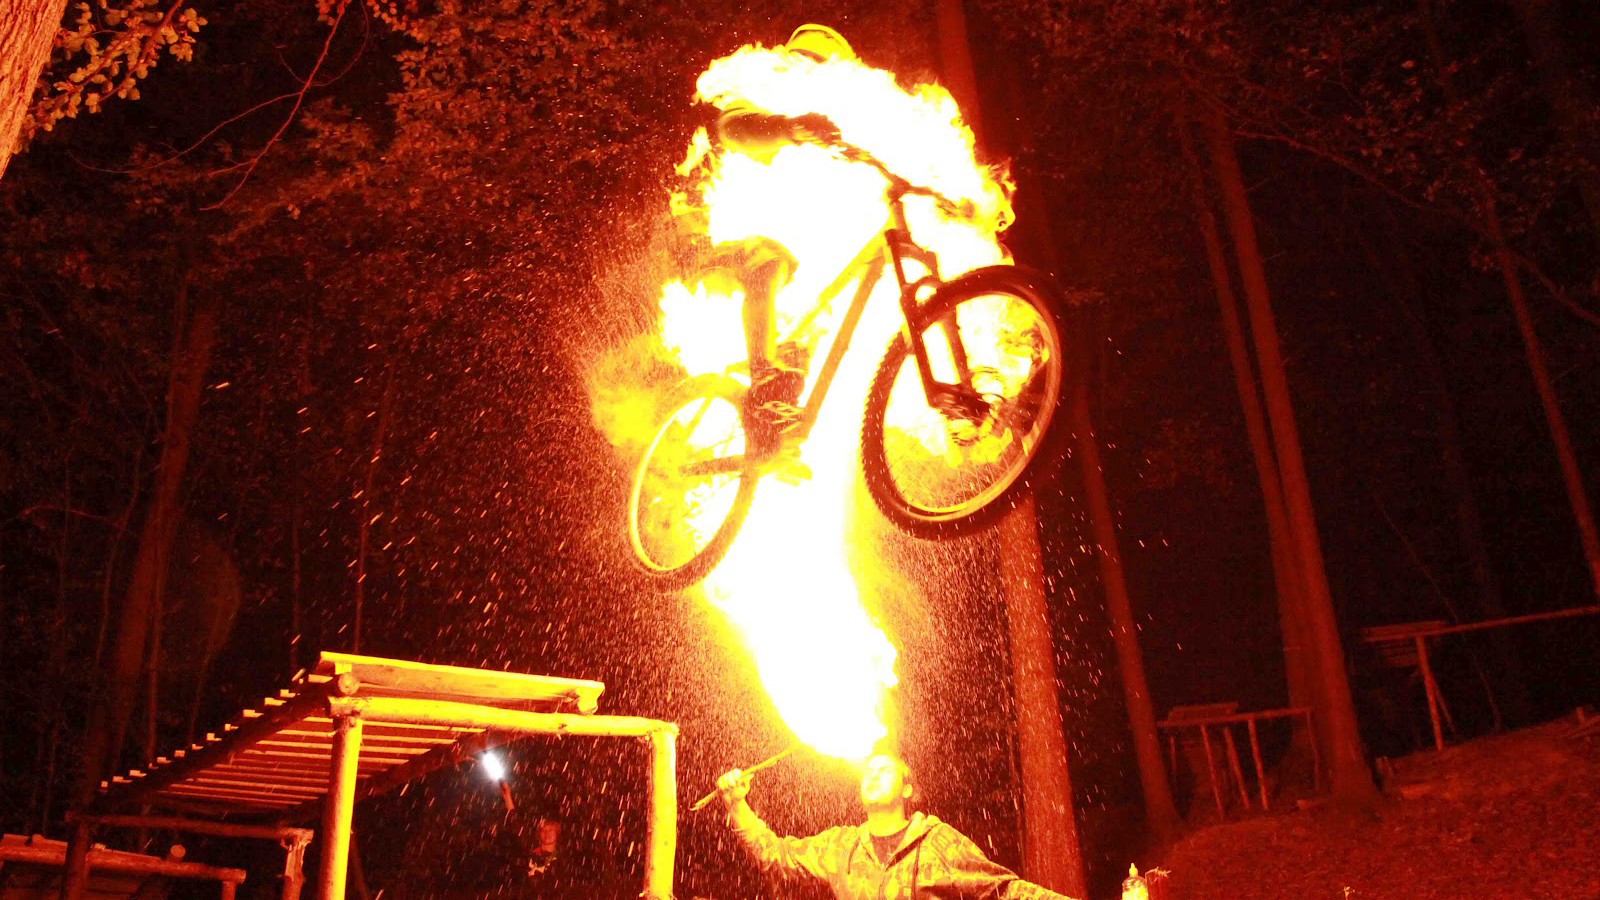 original Bike Jumping While Someone Spits Fire On You Looks Really Fun [WTFriday]